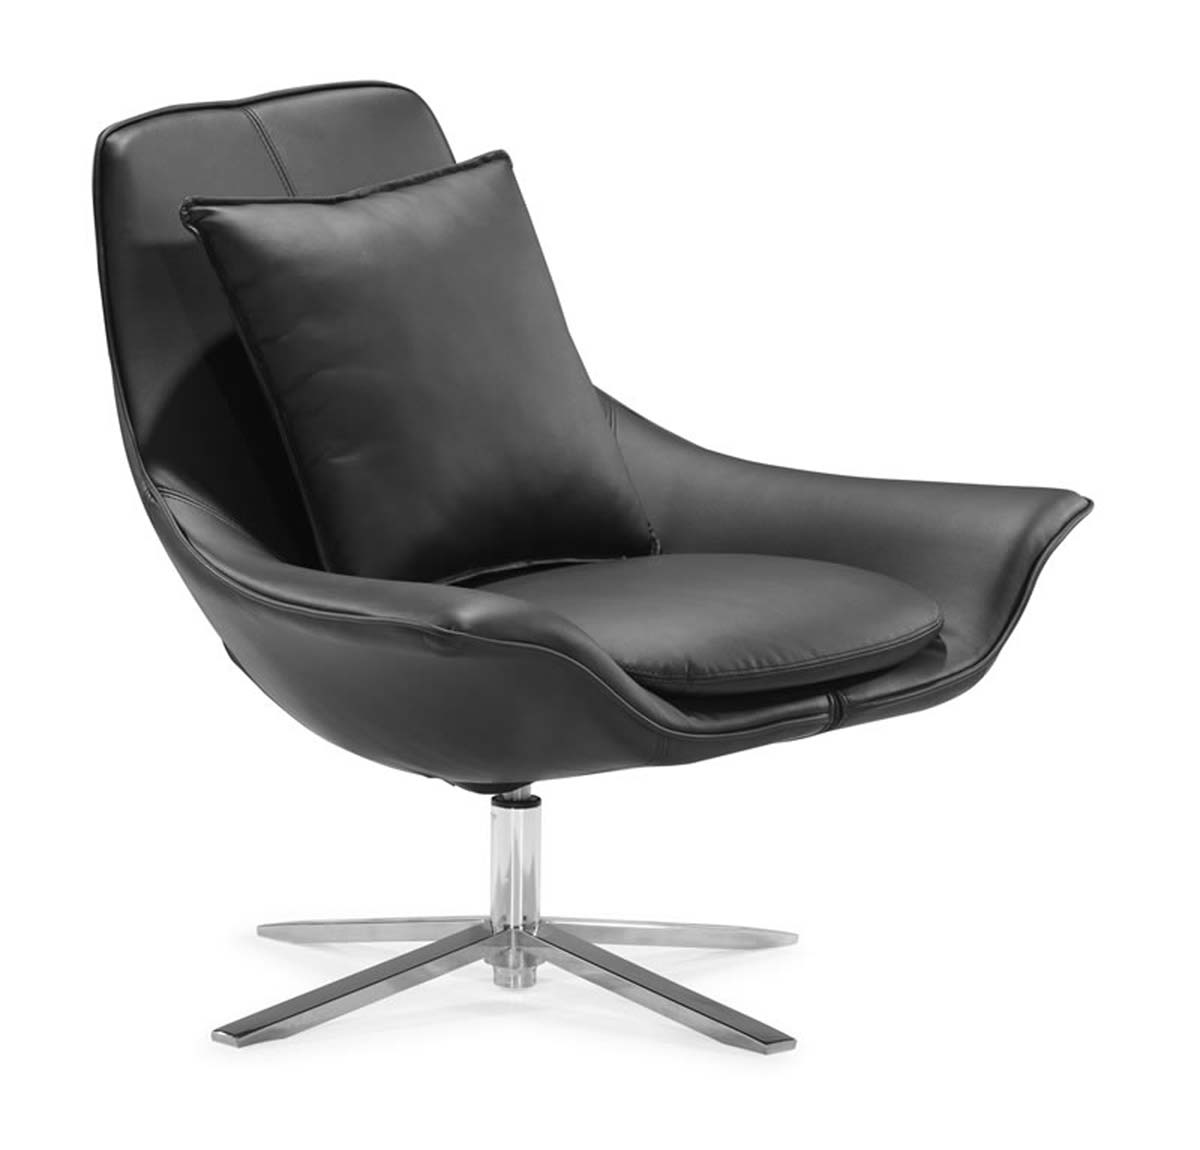 Zuo Modern Vital Lounge Chair - Black